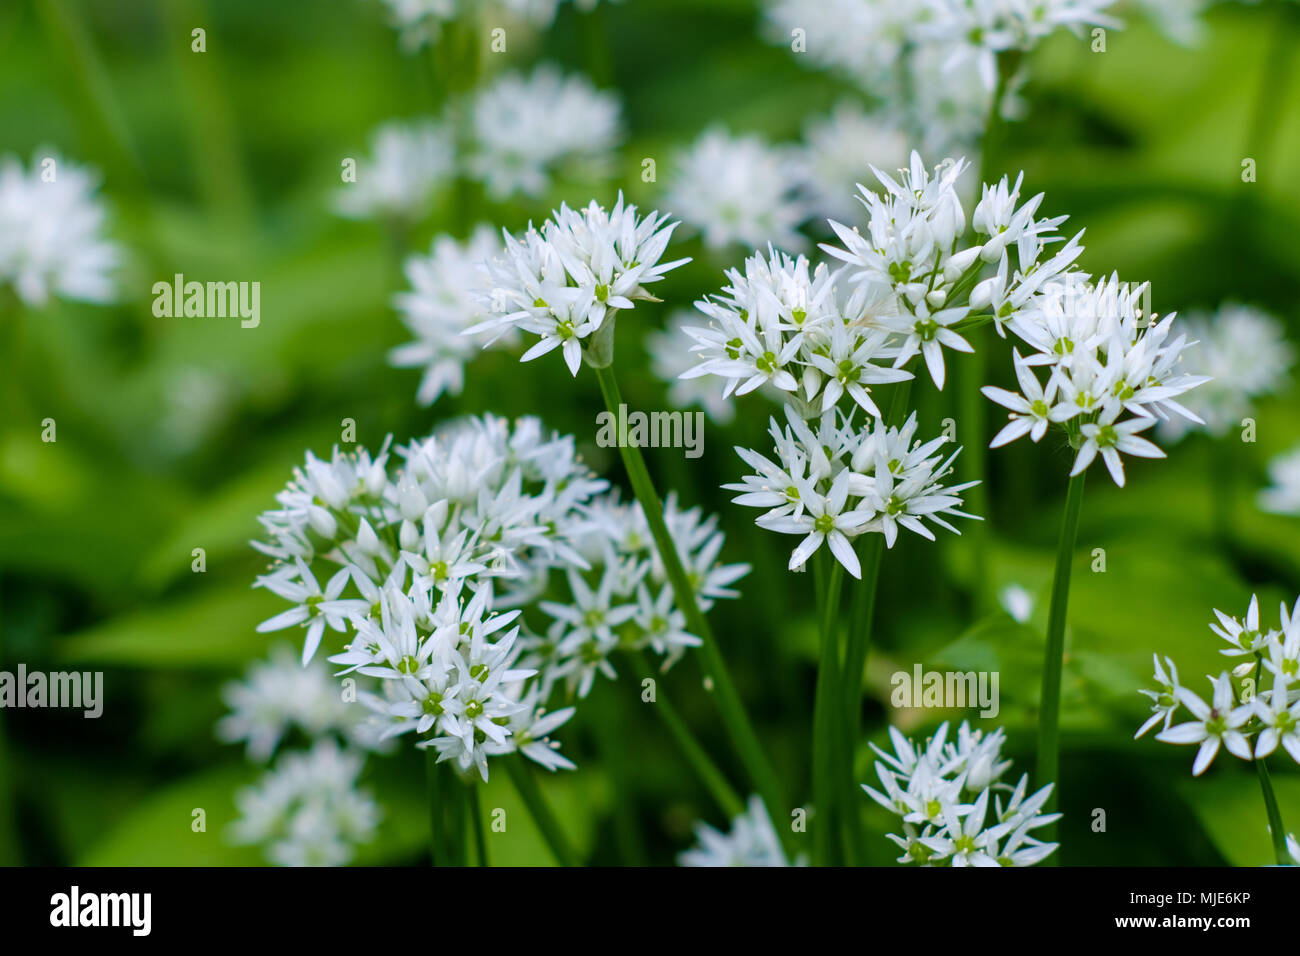 Close-up, wild garlic blossoms in natural surroundings - Stock Image